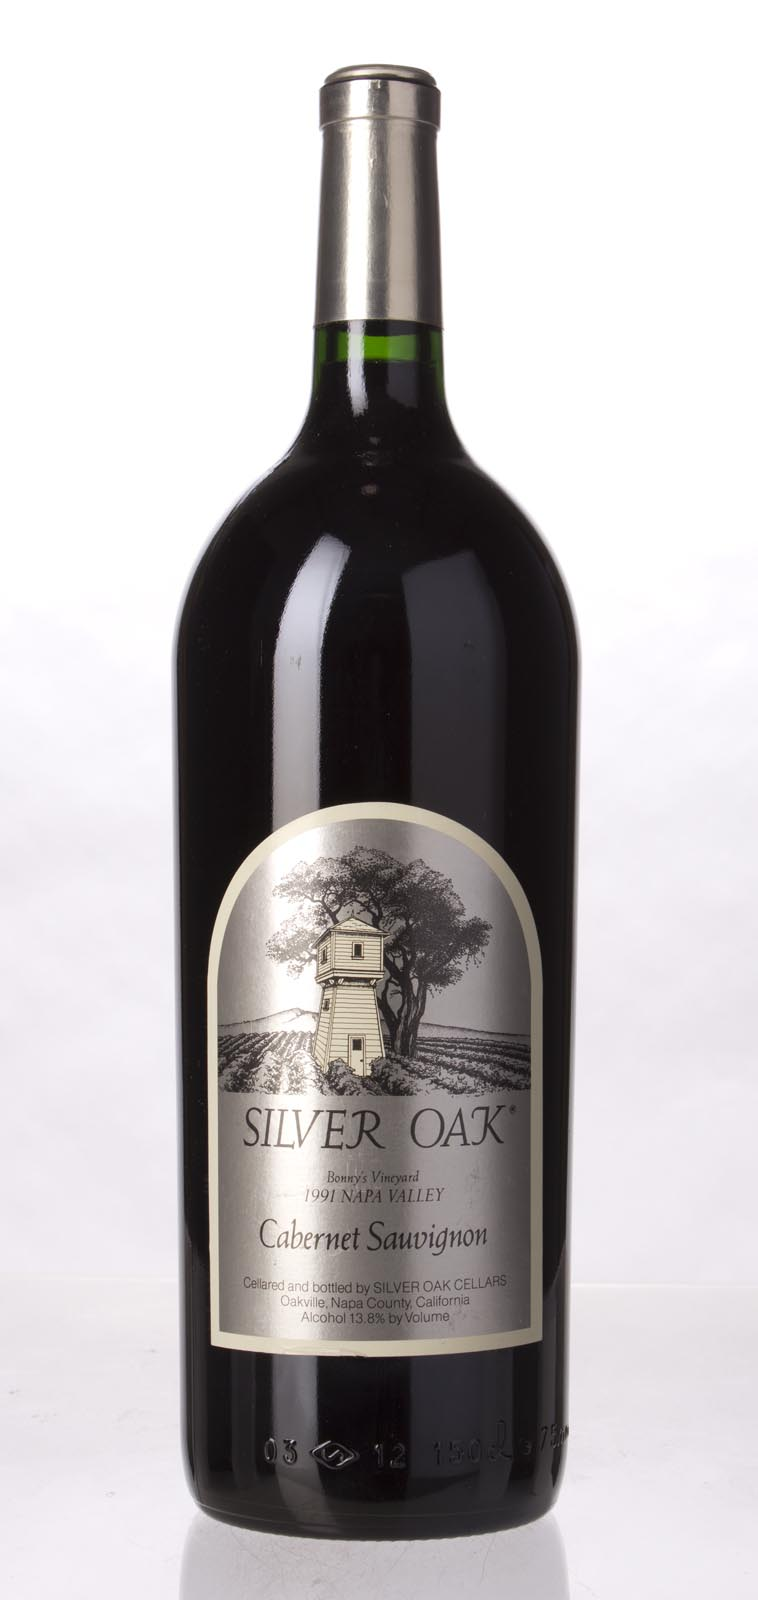 Silver Oak Cabernet Sauvignon Bonny`s Vineyard 1991, 1.5L (WS93) from The BPW - Merchants of rare and fine wines.